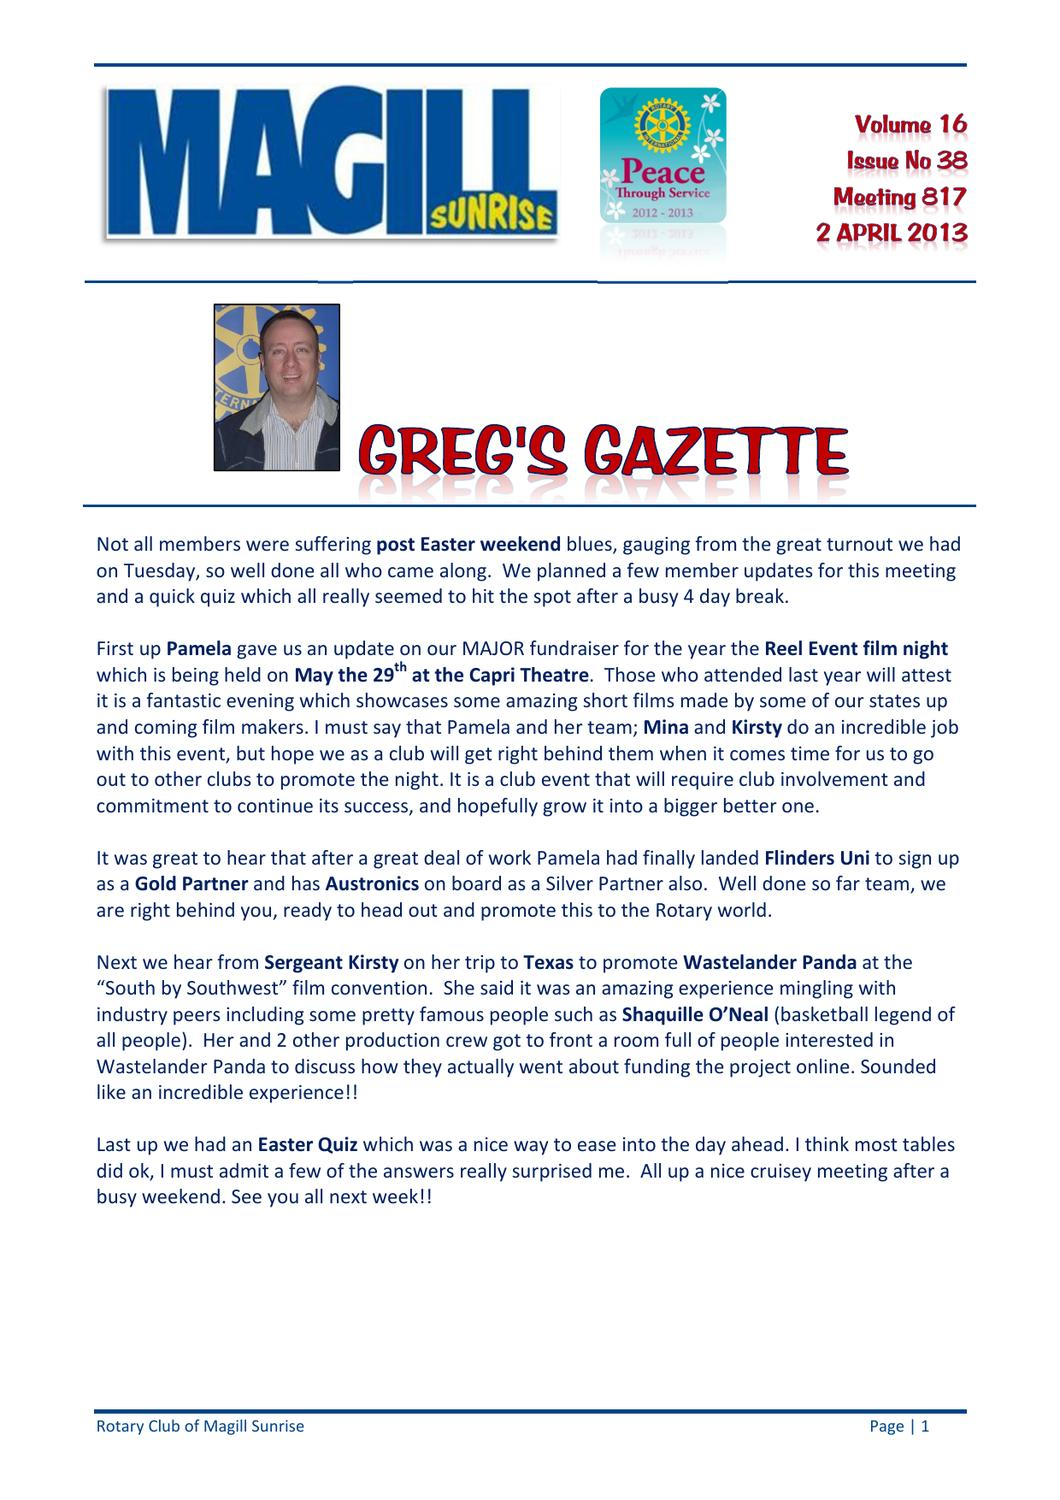 817 Bulletin Issue 16-38 20130402 by Magill Rotary - issuu